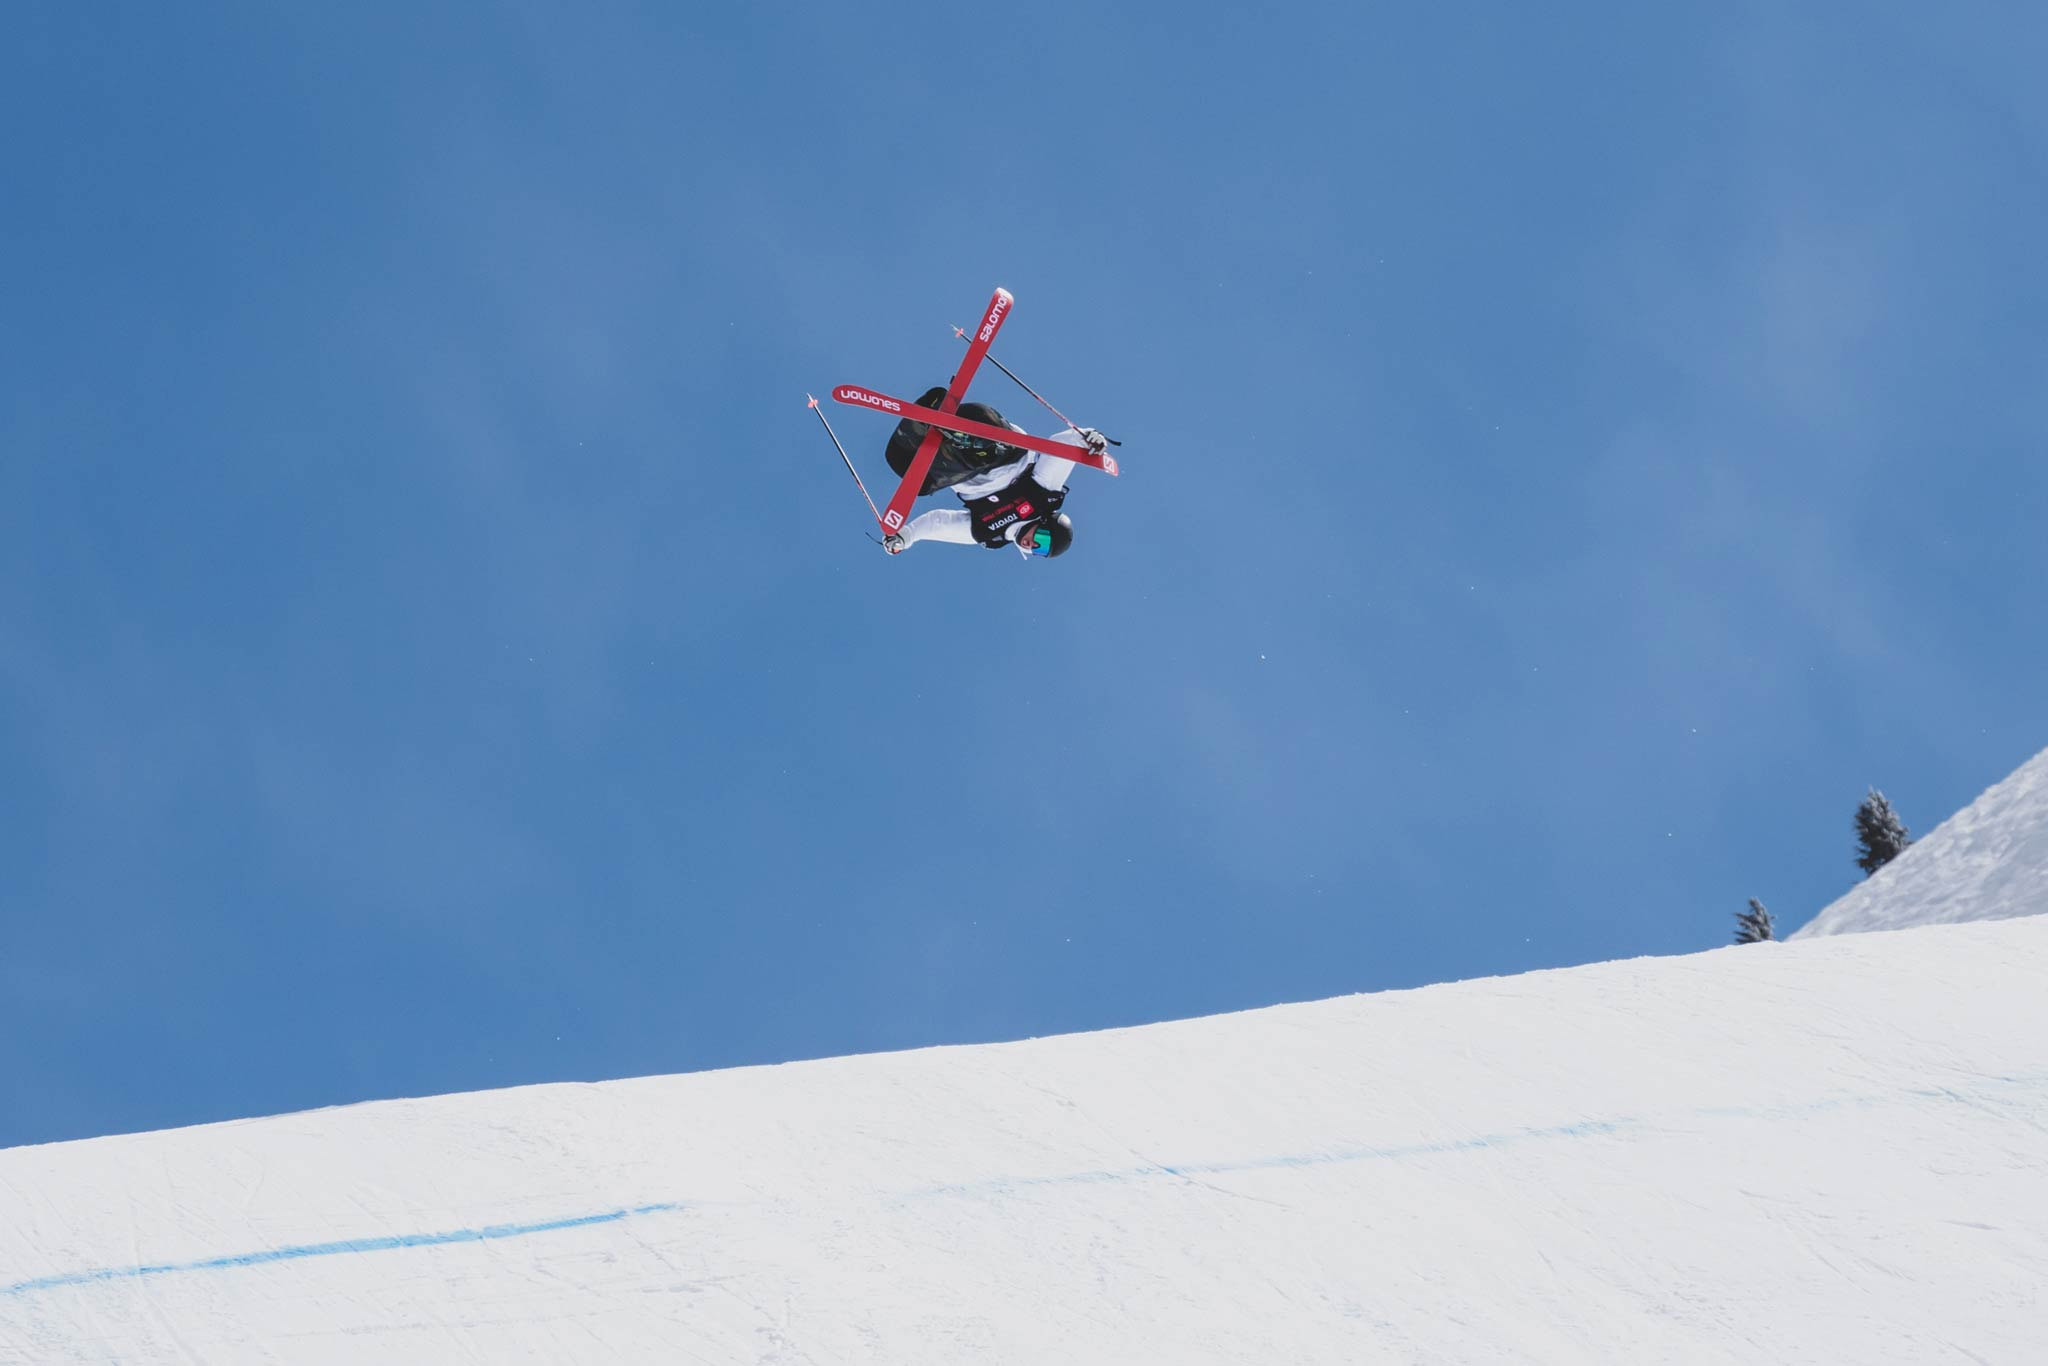 FIS Freestyle Slopestyle World Cup 18/19 #4: Mammoth Mountain - Foto: FIS Freestyle